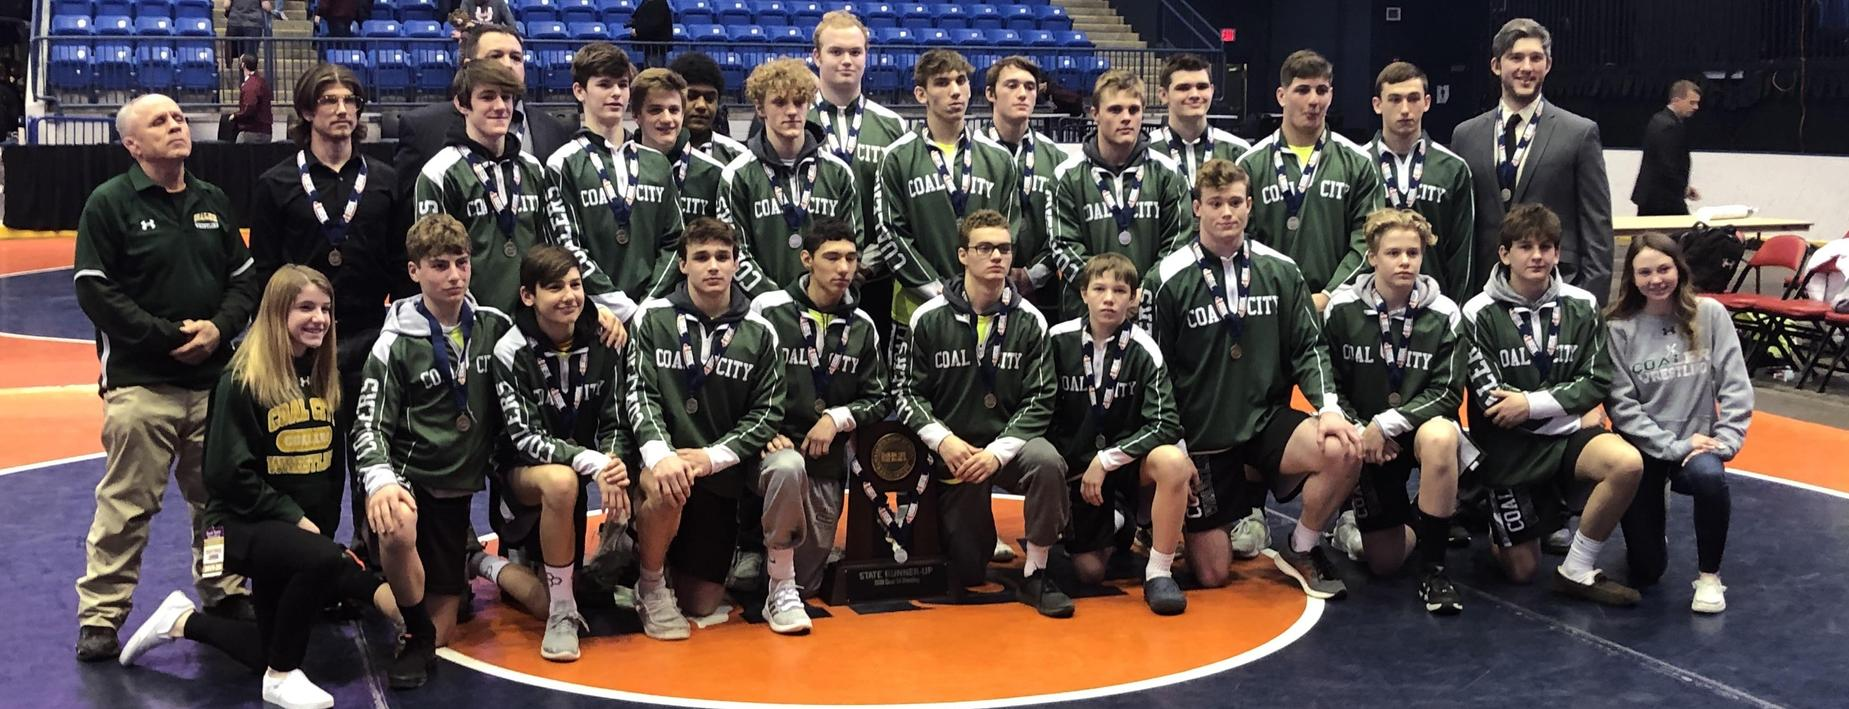 2nd in state